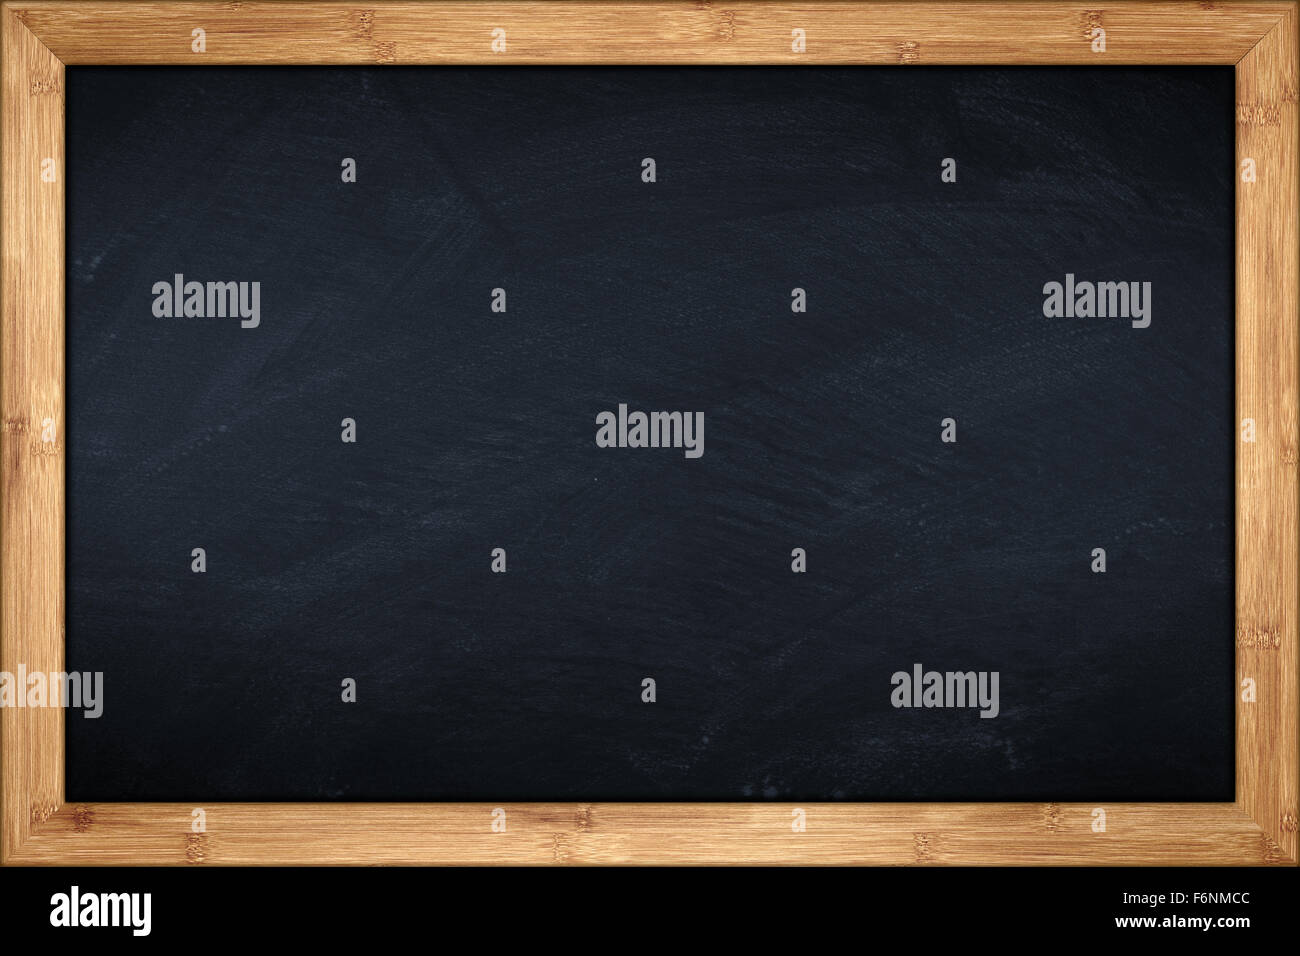 blackboard with wooden bamboo frame - Stock Image